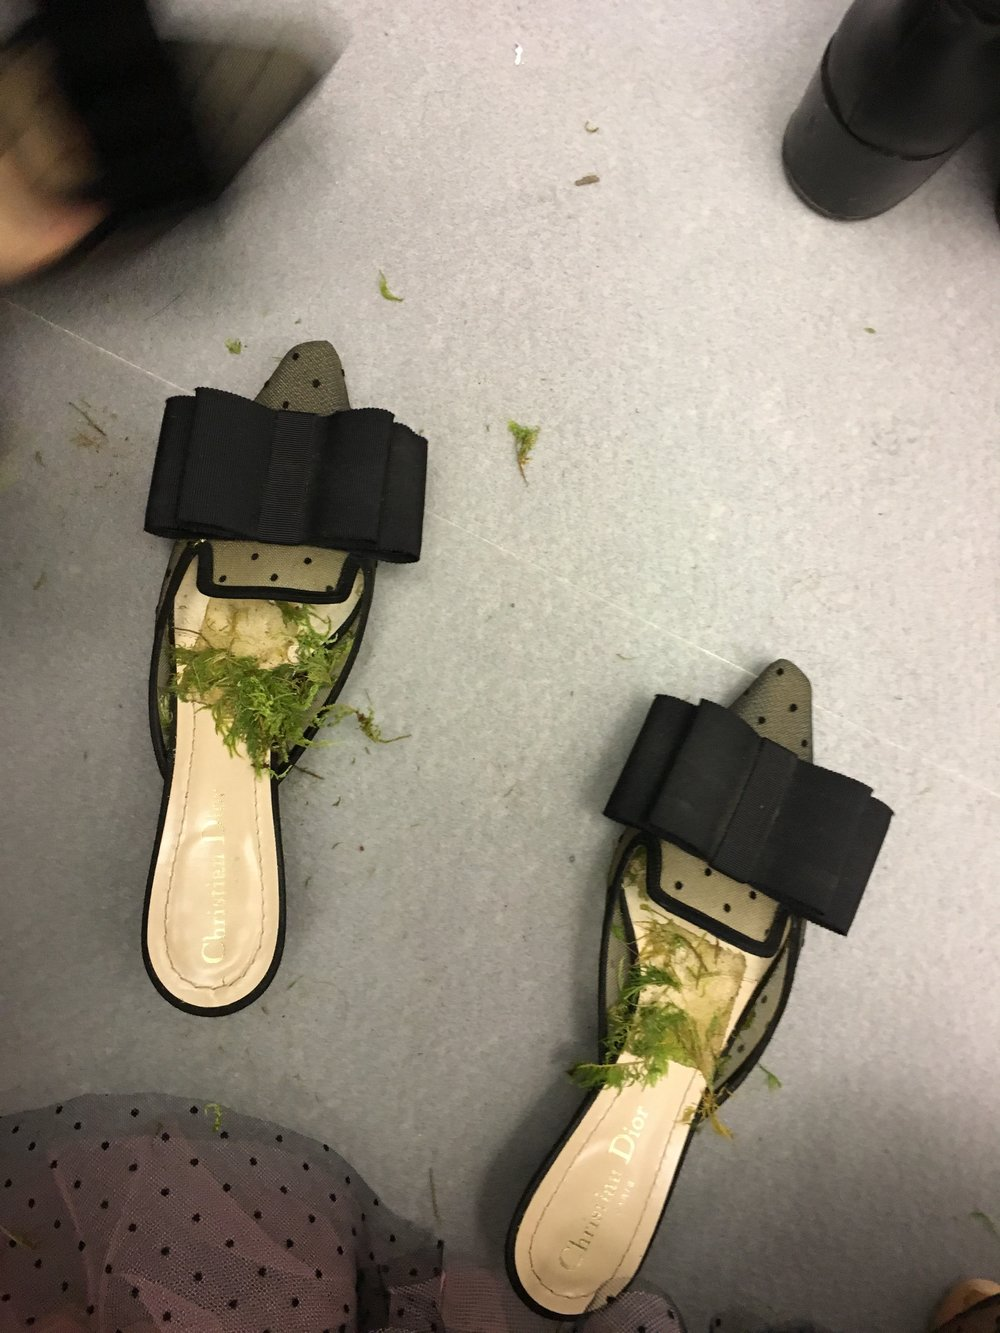 My Shoes filled with moss after I stepped off the Runway